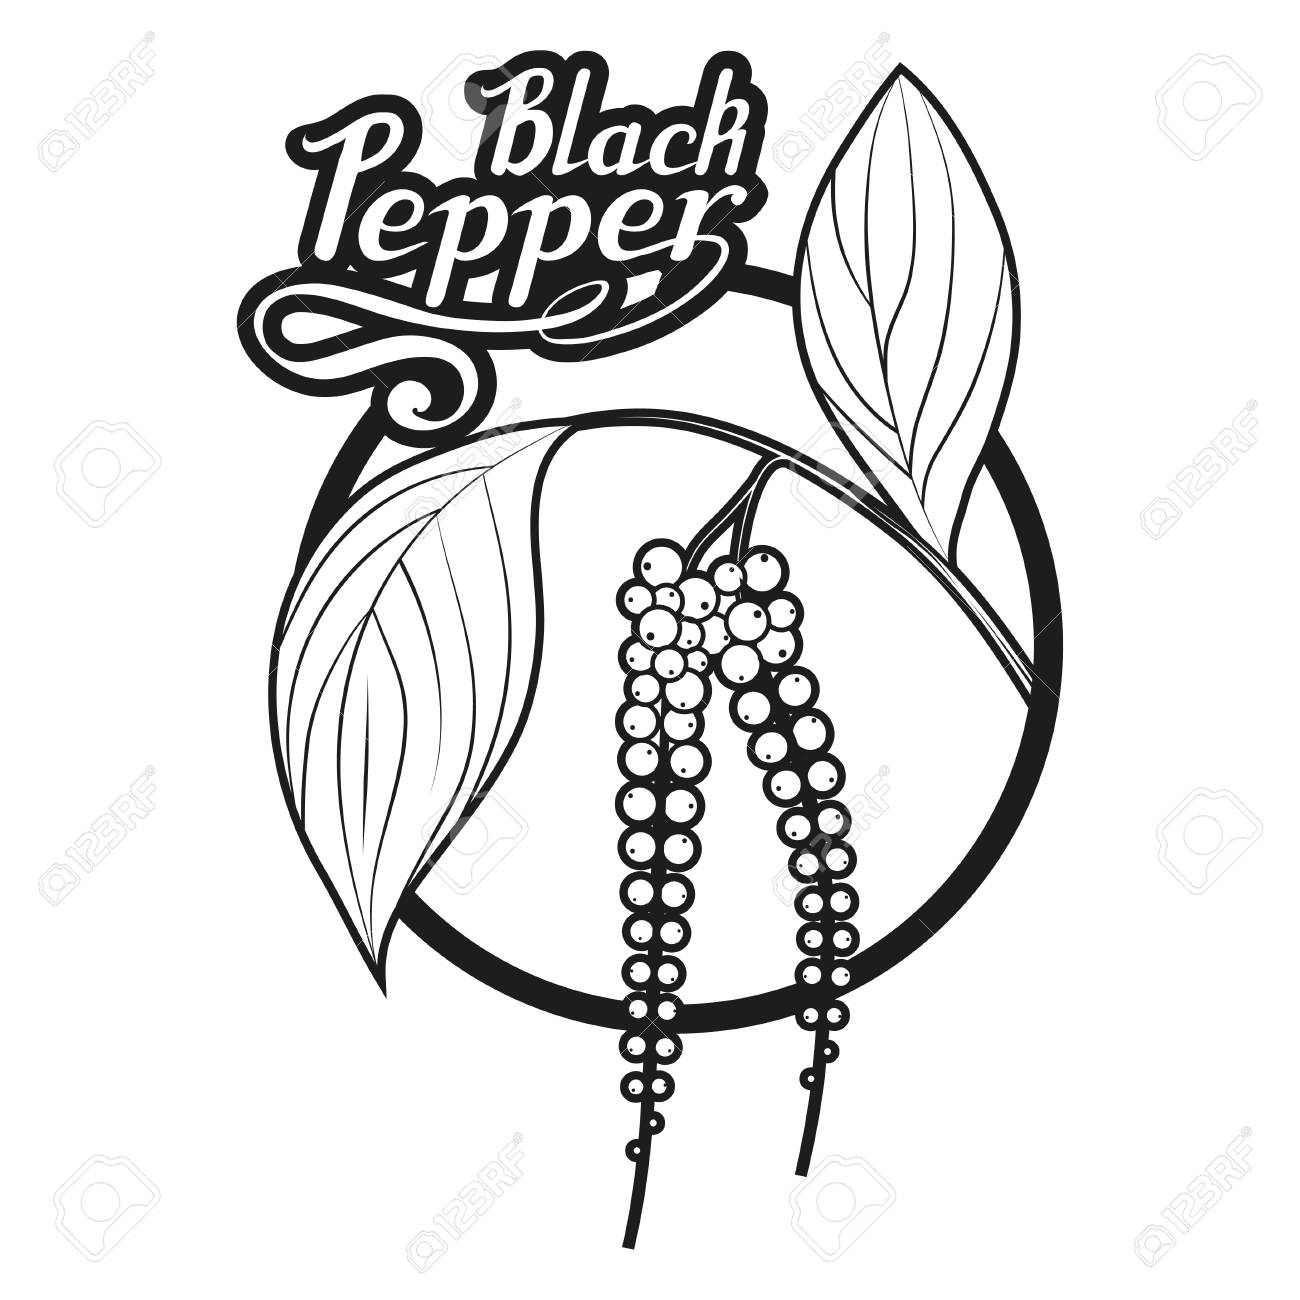 Hand Drawn Black Pepper Spicy Ingredient Black Pepper Logo Royalty Free Cliparts Vectors And Stock Illustration Image 109041527